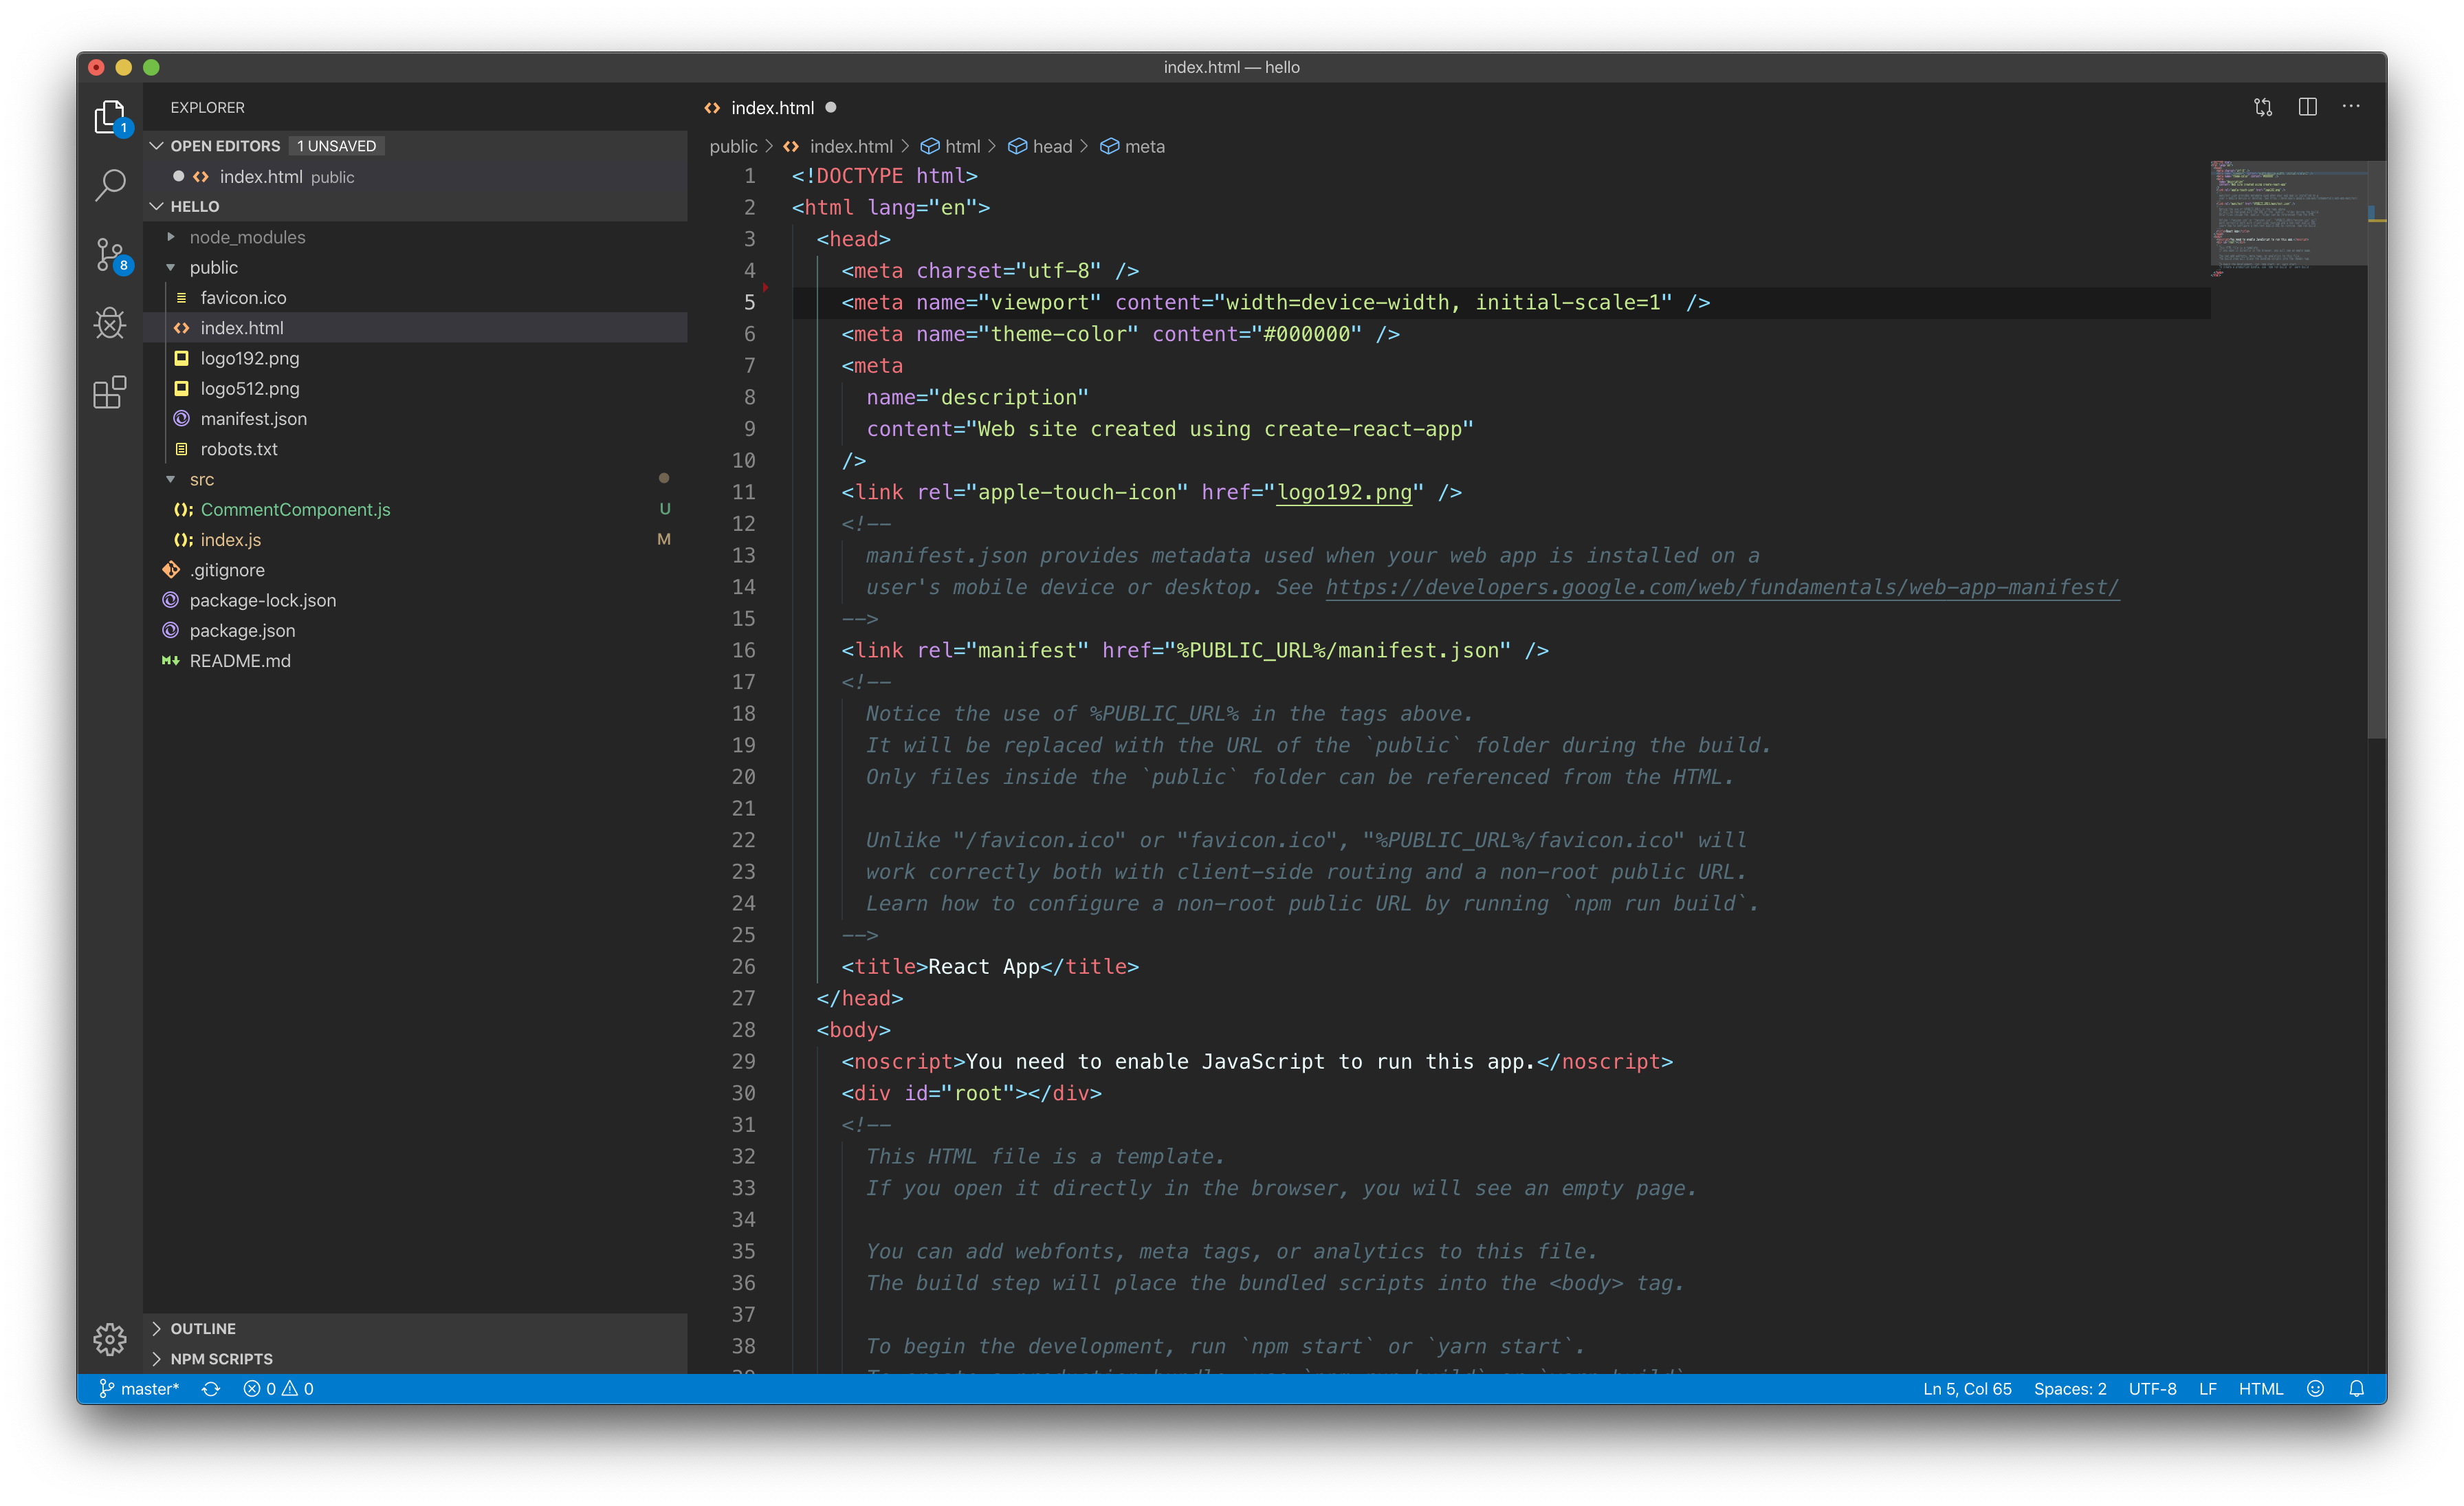 Sublime Material Theme - Dark